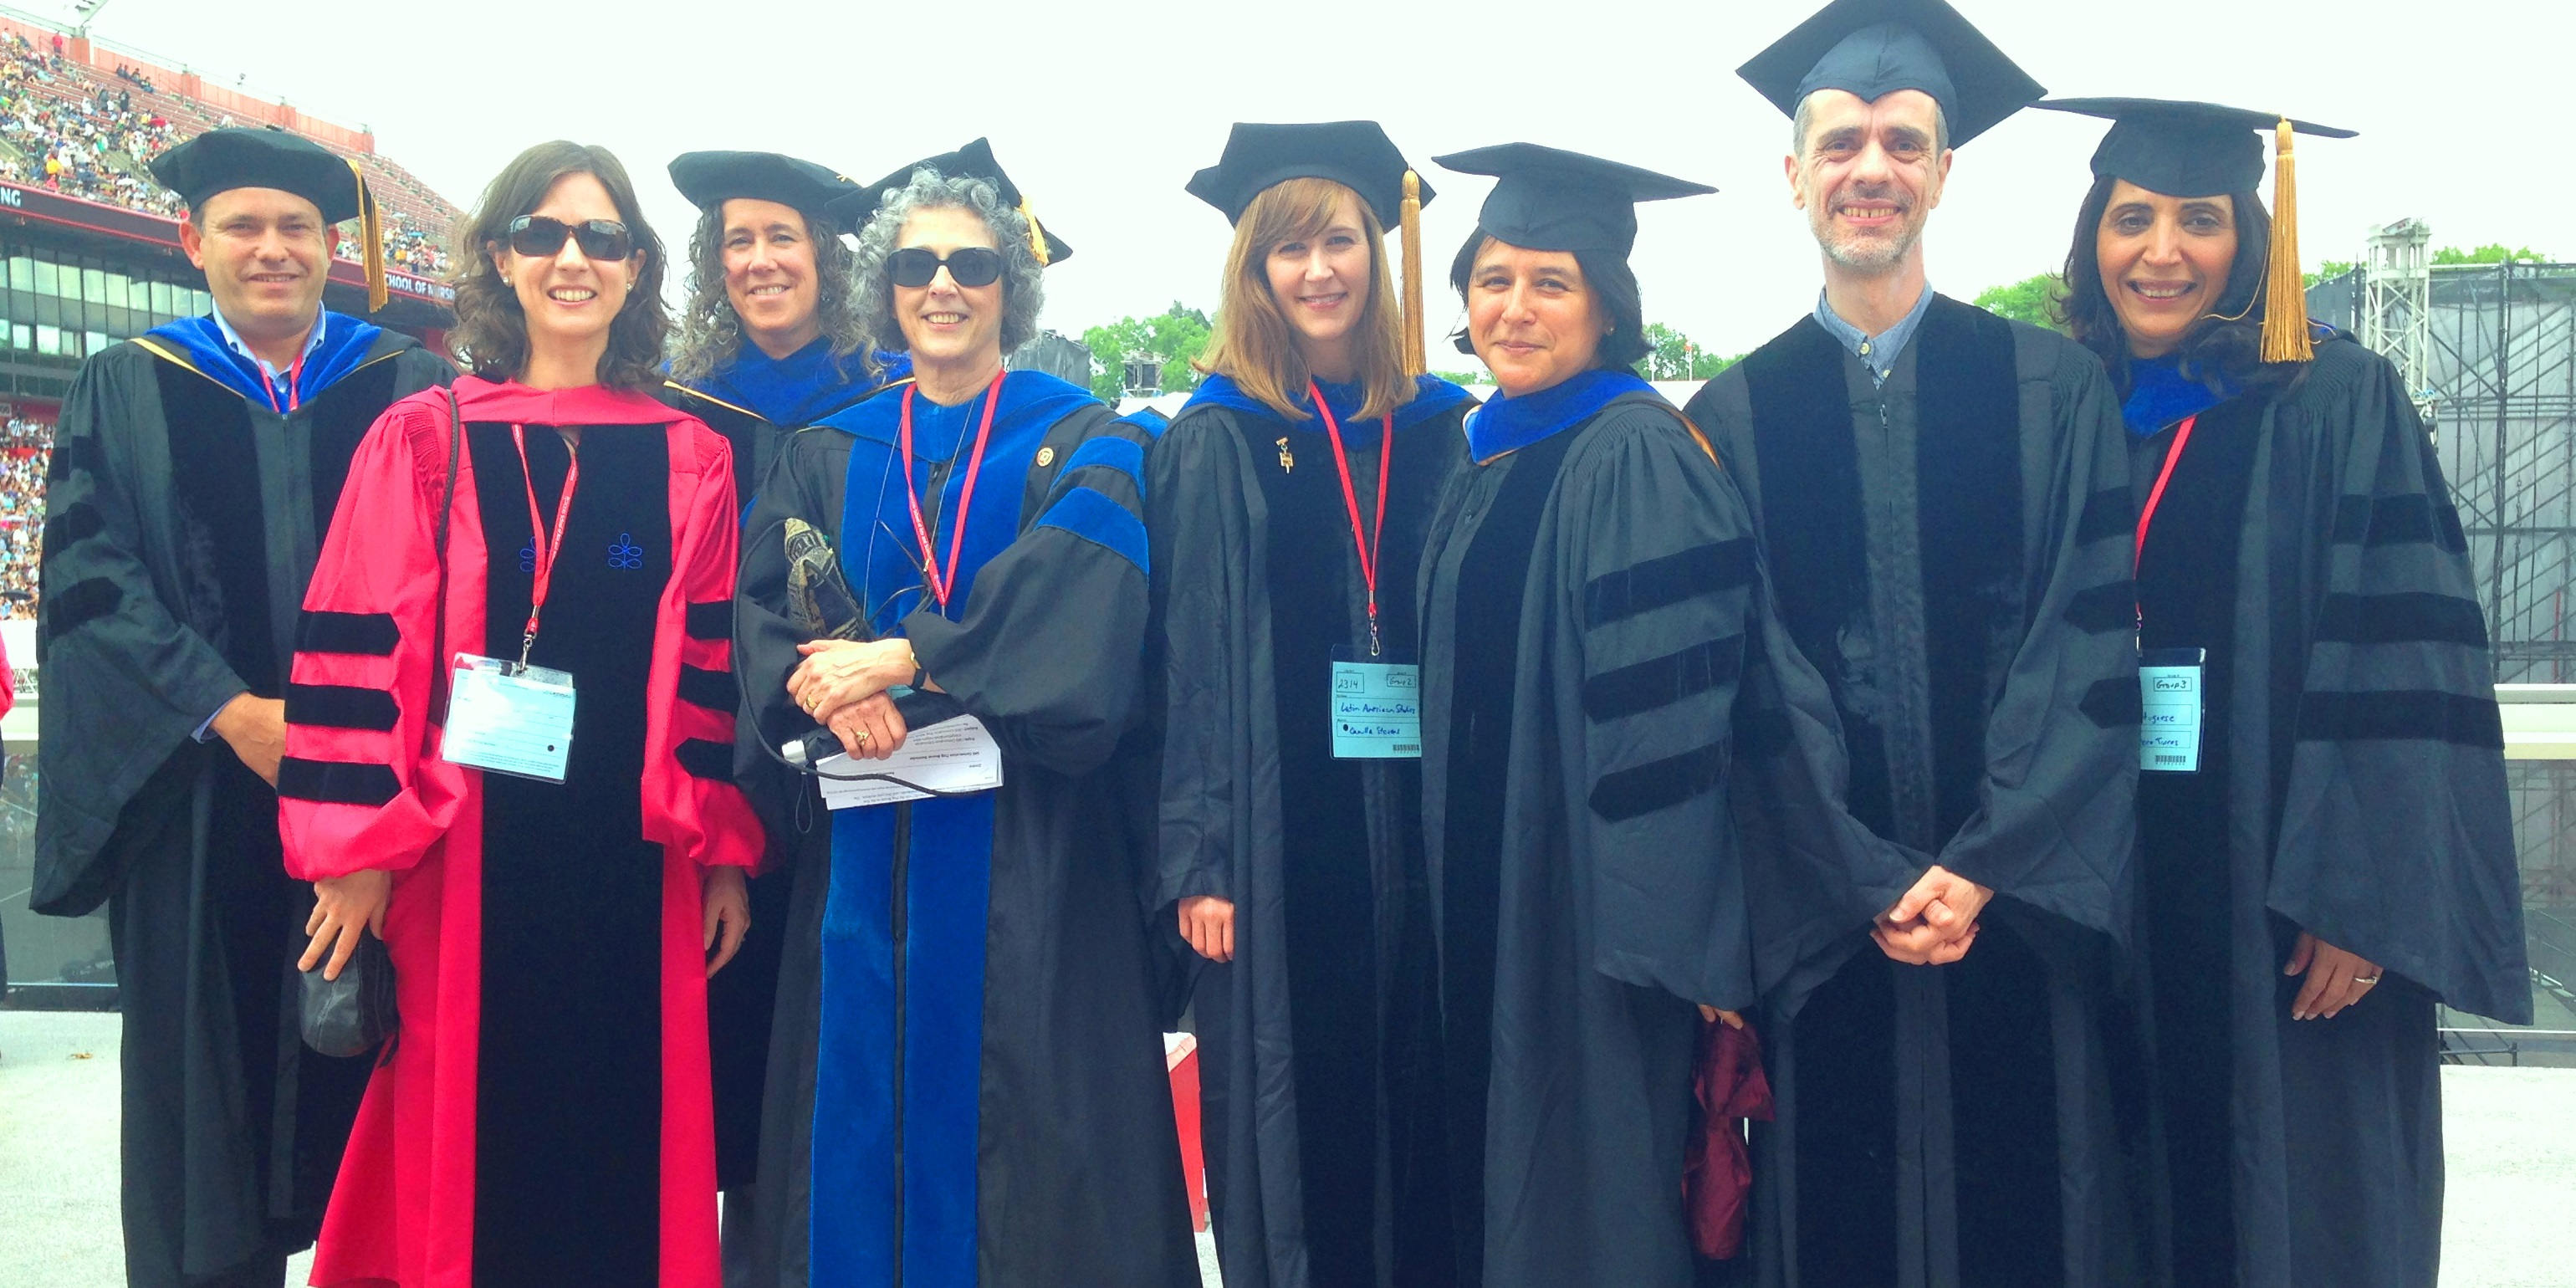 2017 Arts and Sciences Convocation: Order Your Faculty Regalia Now